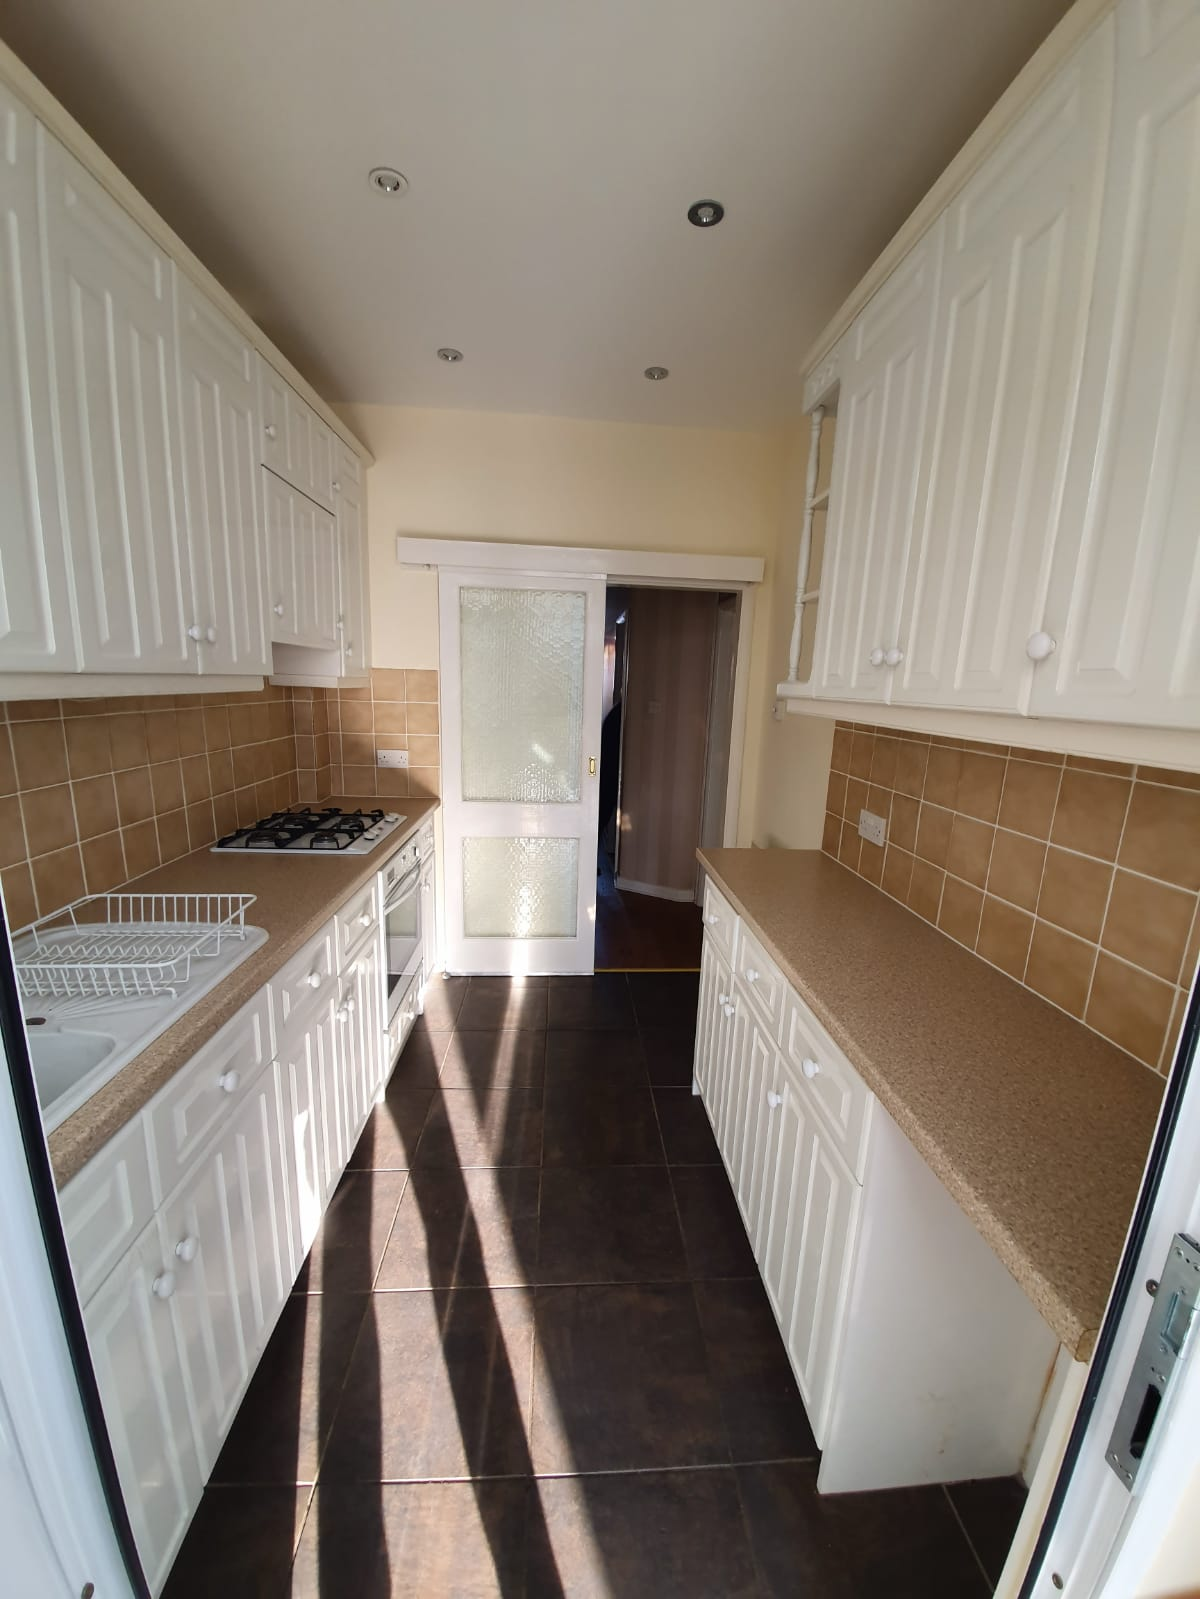 Narrow, cramped kitchen in need of remodelling